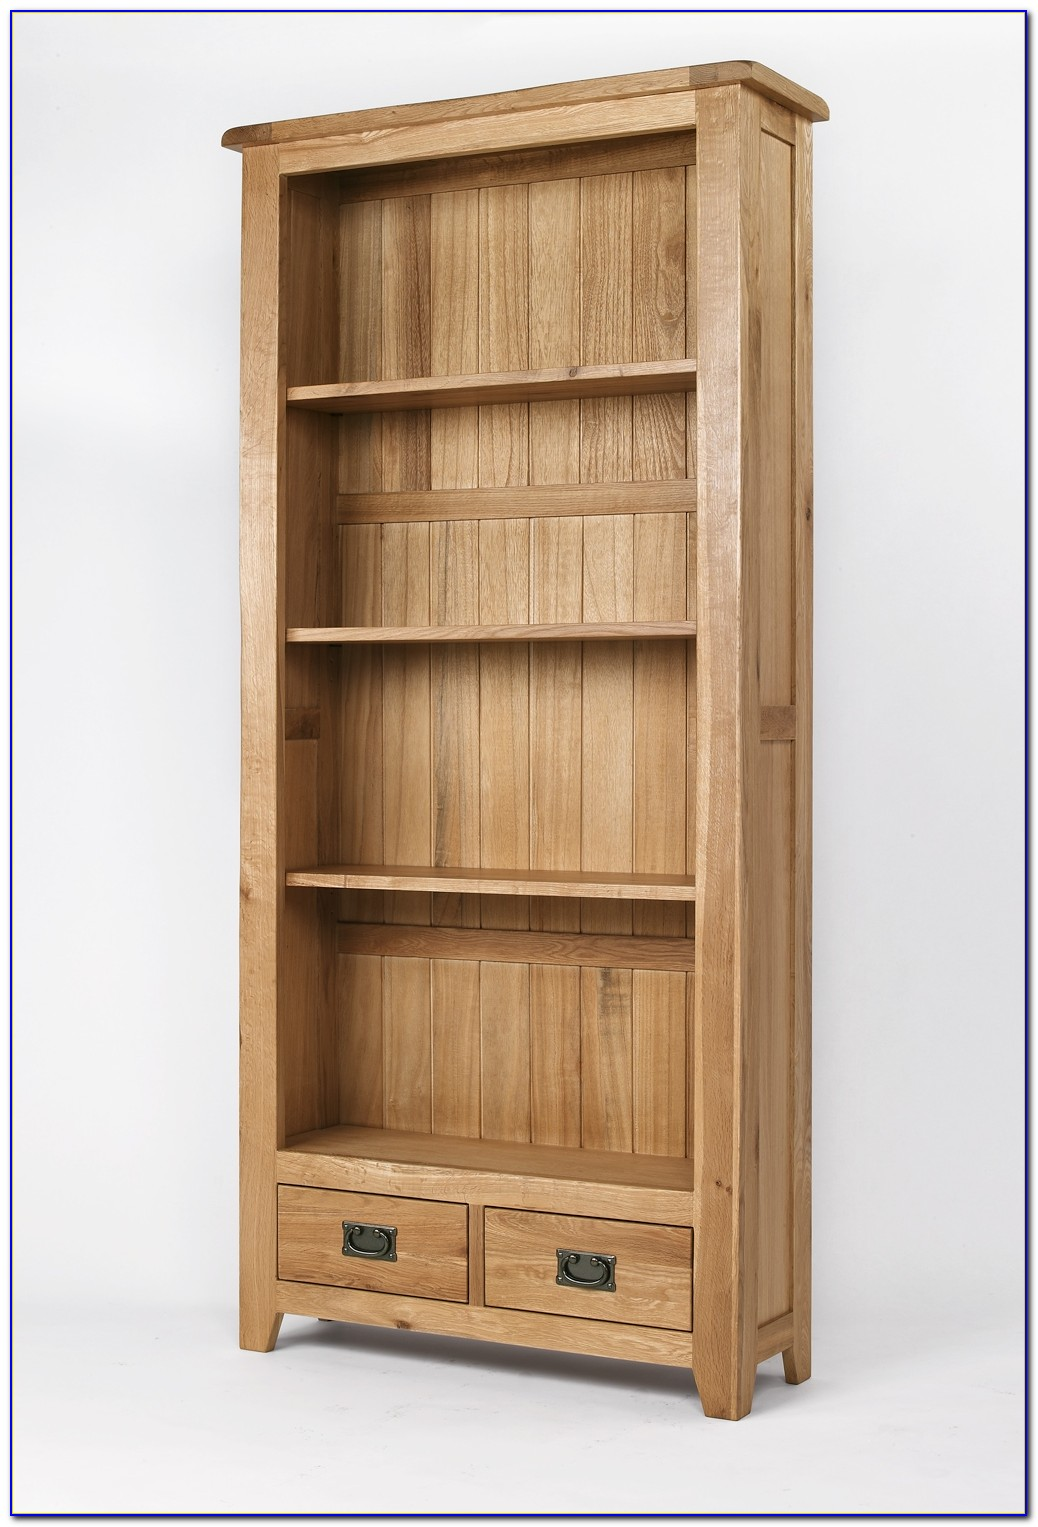 Tall Shelves Bookcase